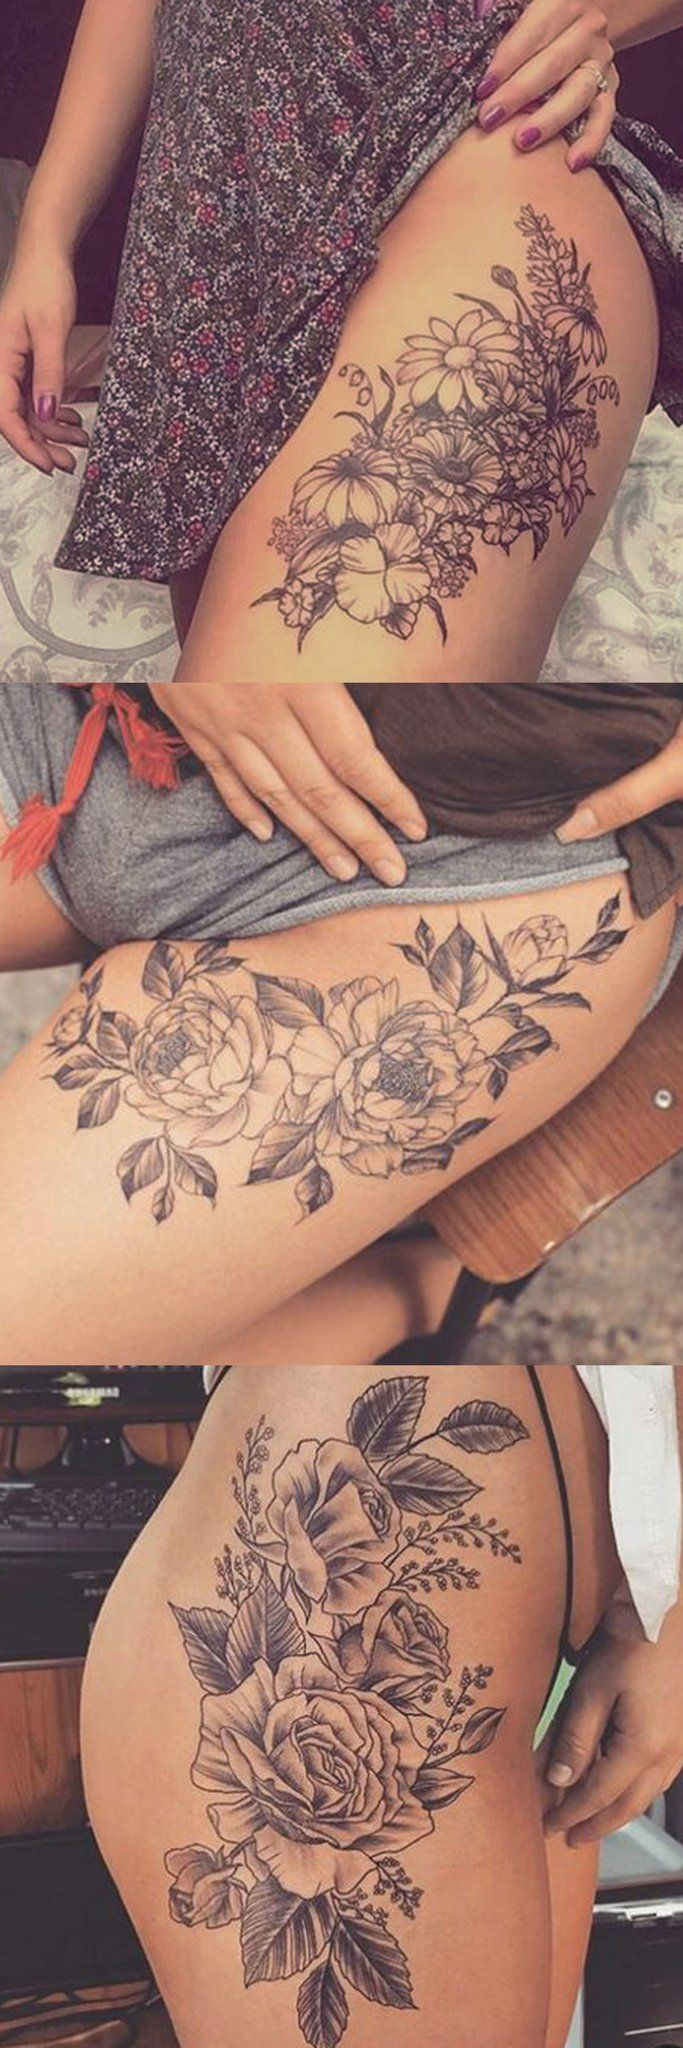 best 25+ leg tattoos for women ideas on pinterest | leg sleeve